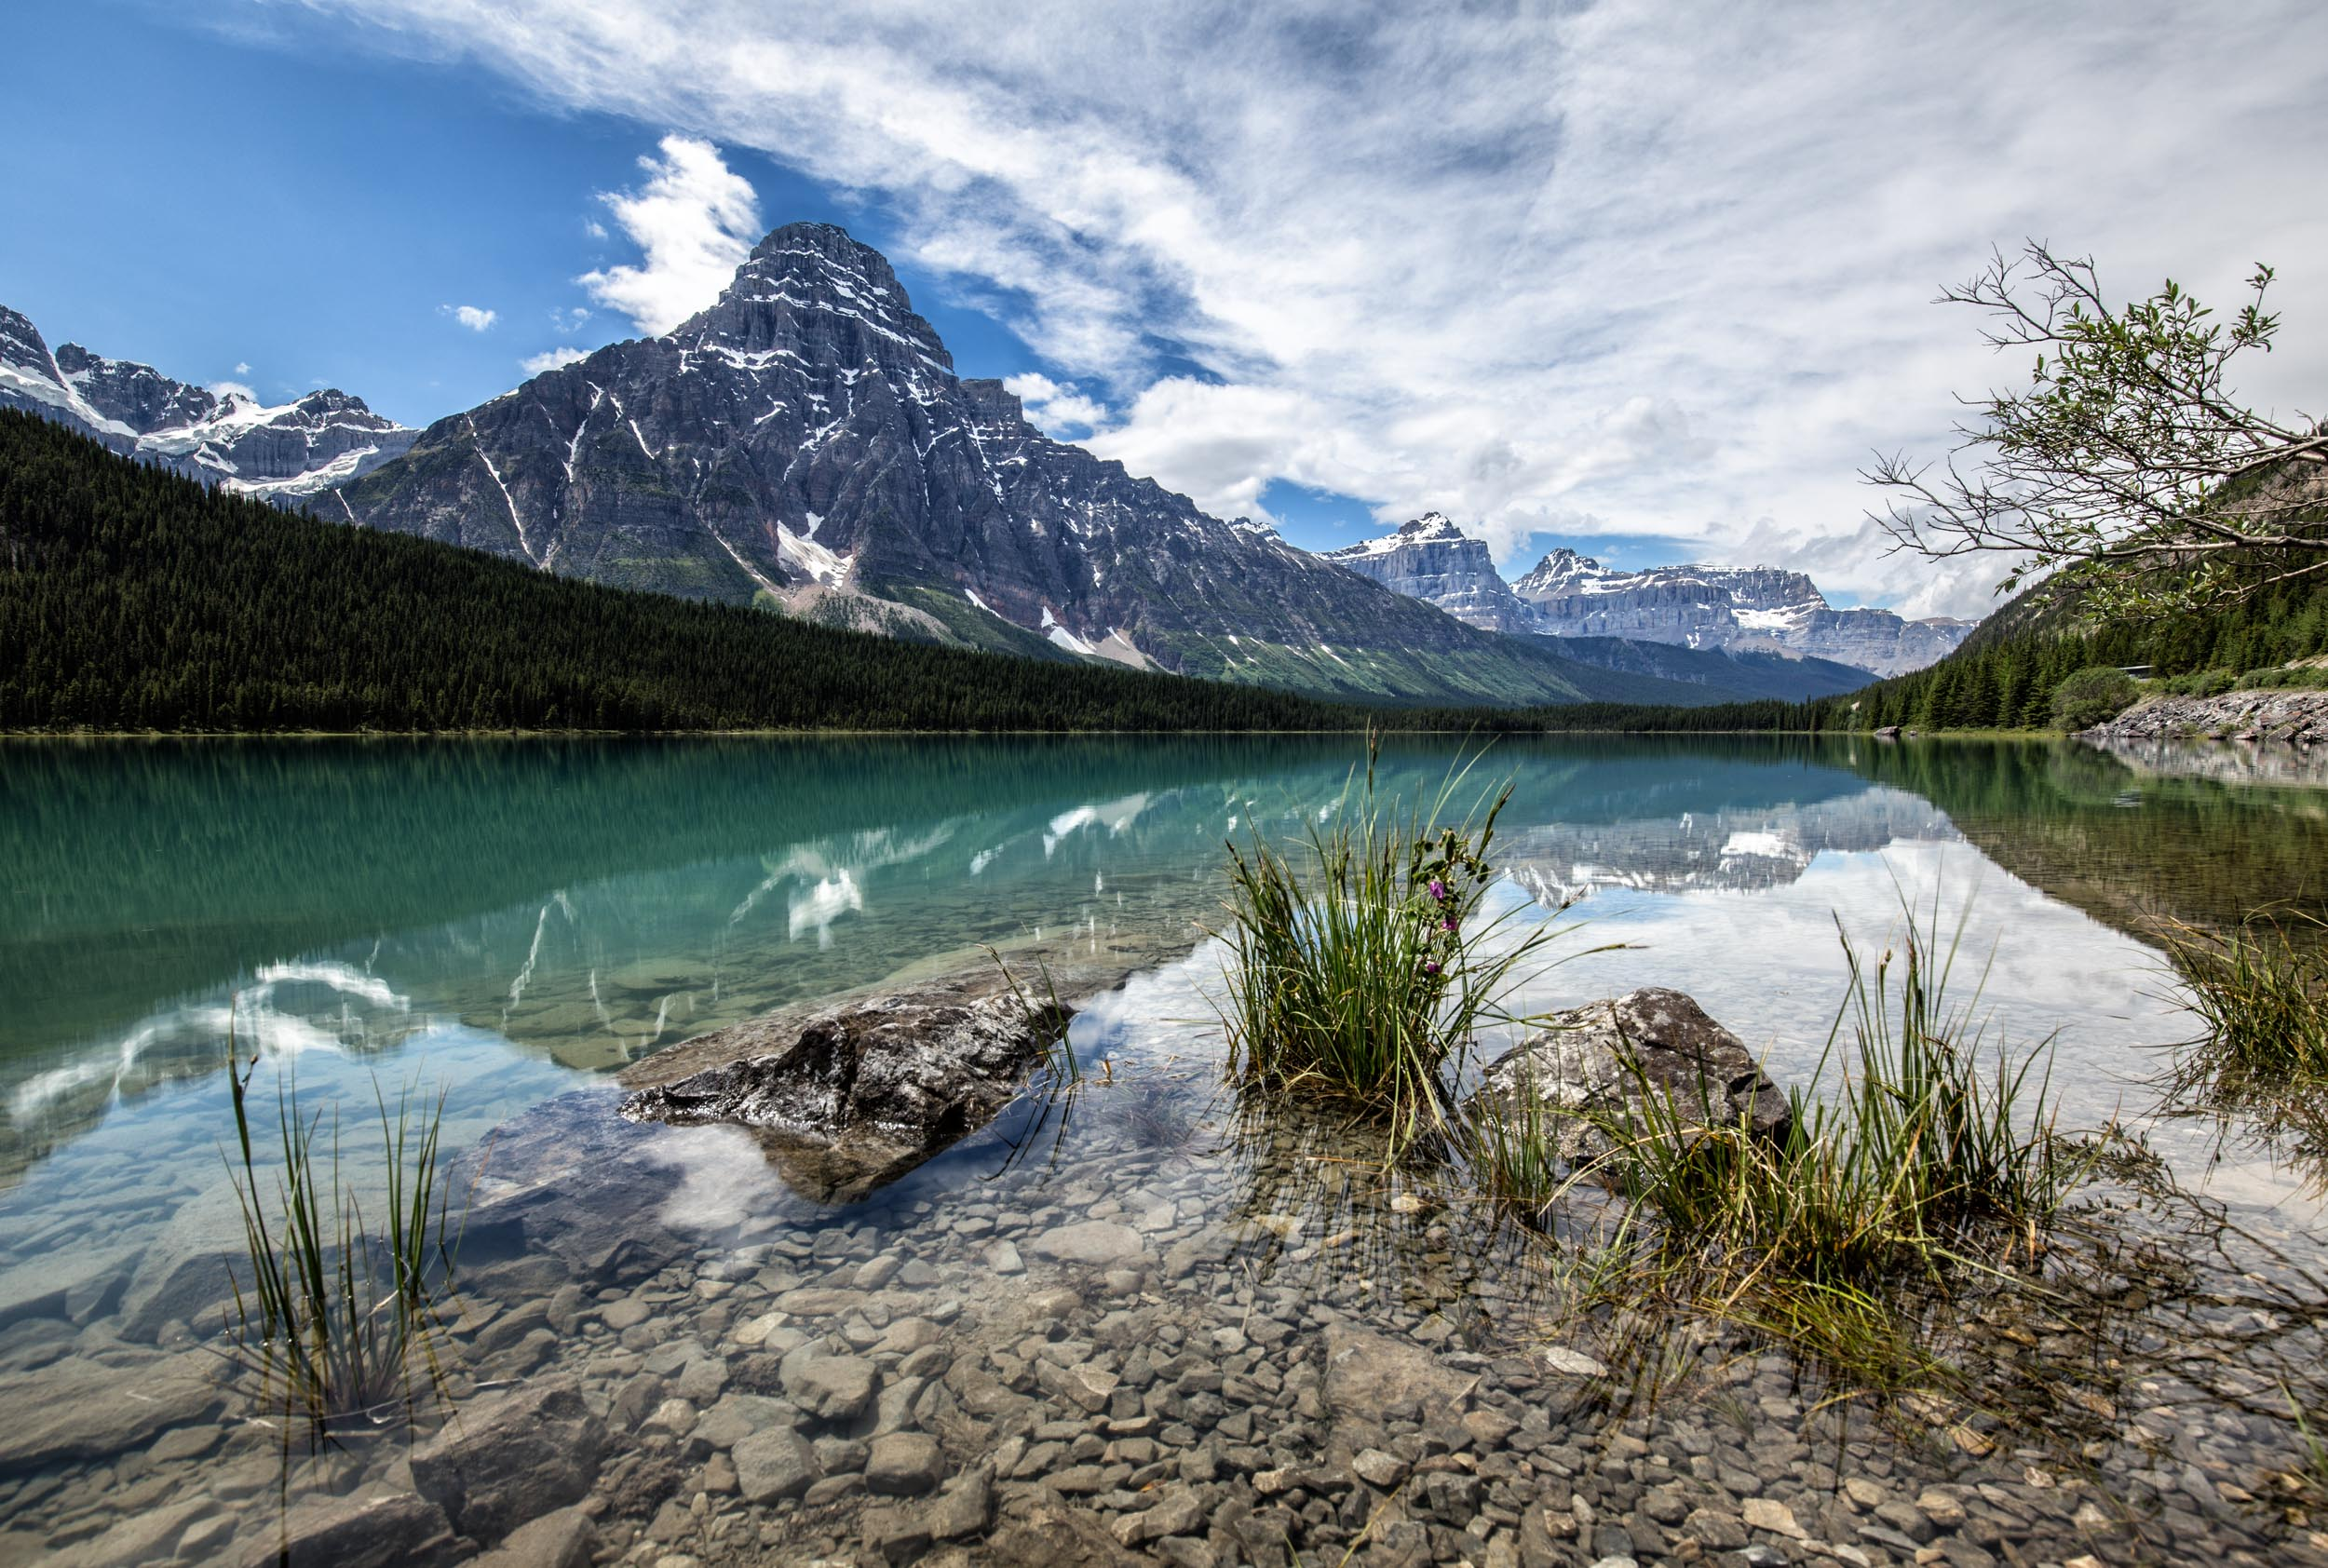 Waterfowl Lake - Alberta National Park, Kanada - Landschaftsbild